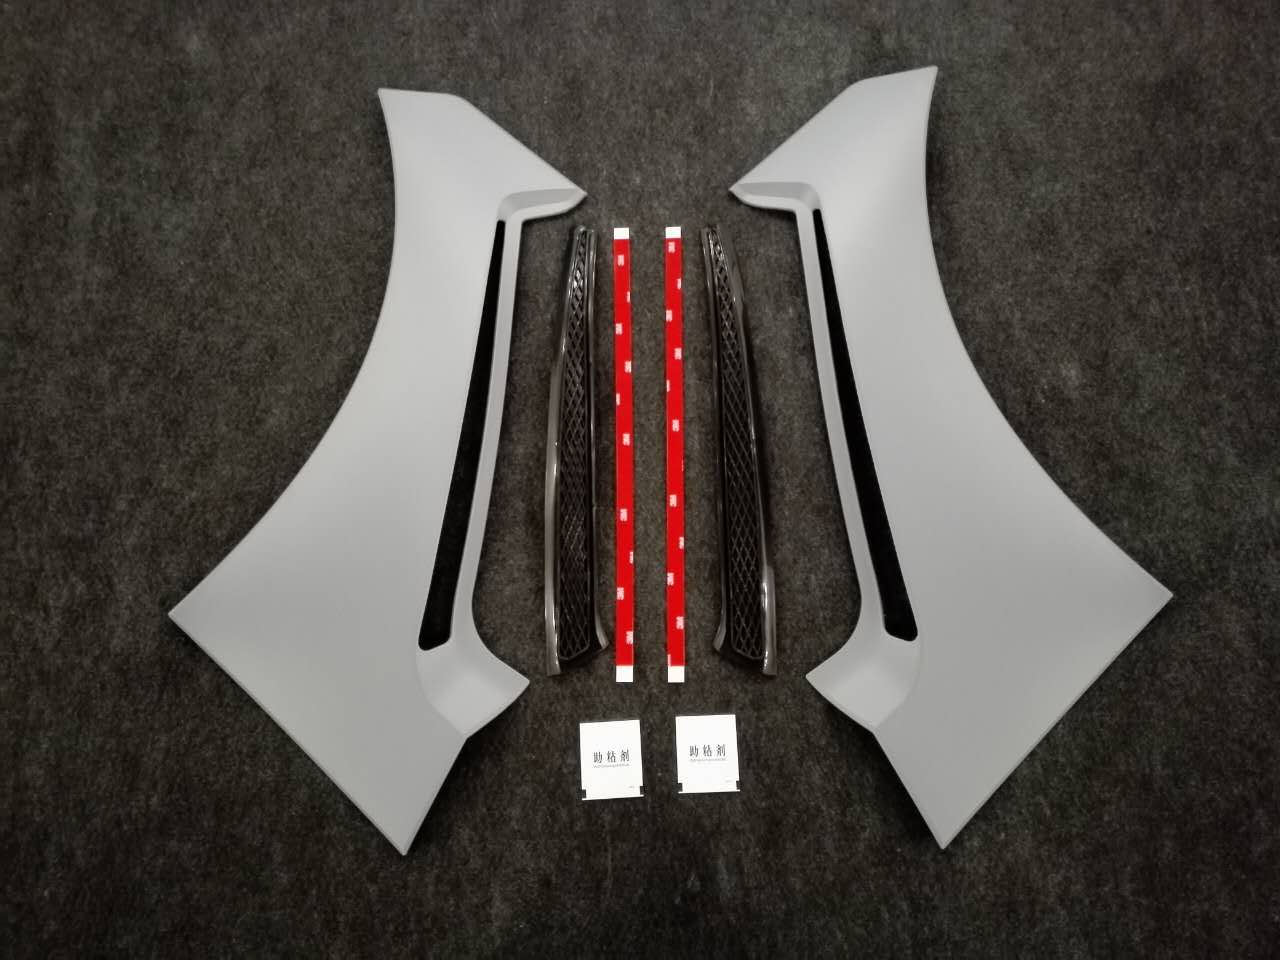 2015-17 Mustang Front Fender Scoop Vents Type GT350 V2 - (ALL MODELS) PAIR - Polyurethane